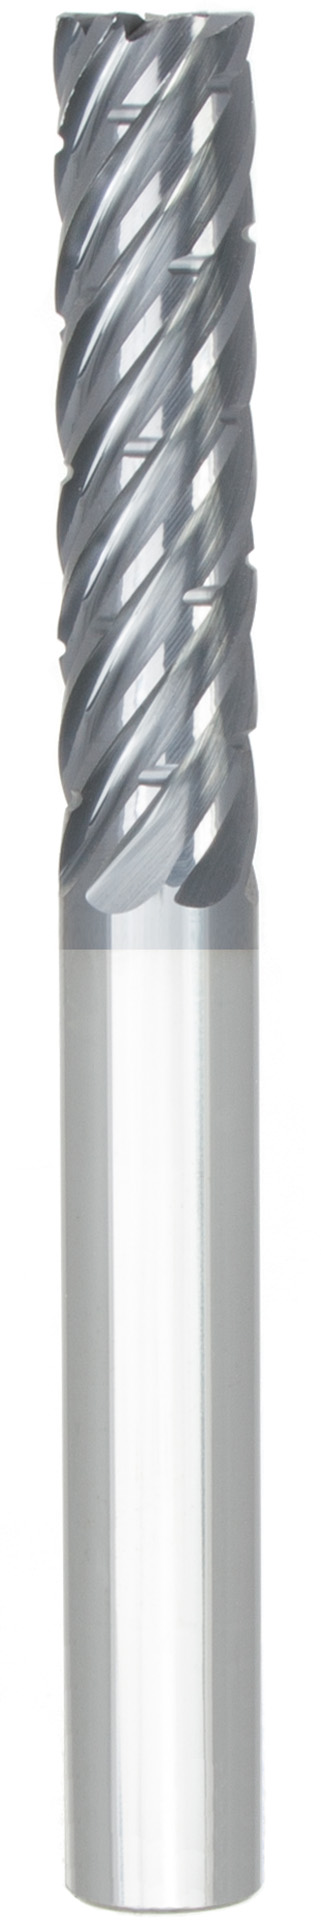 diamond coated end mills